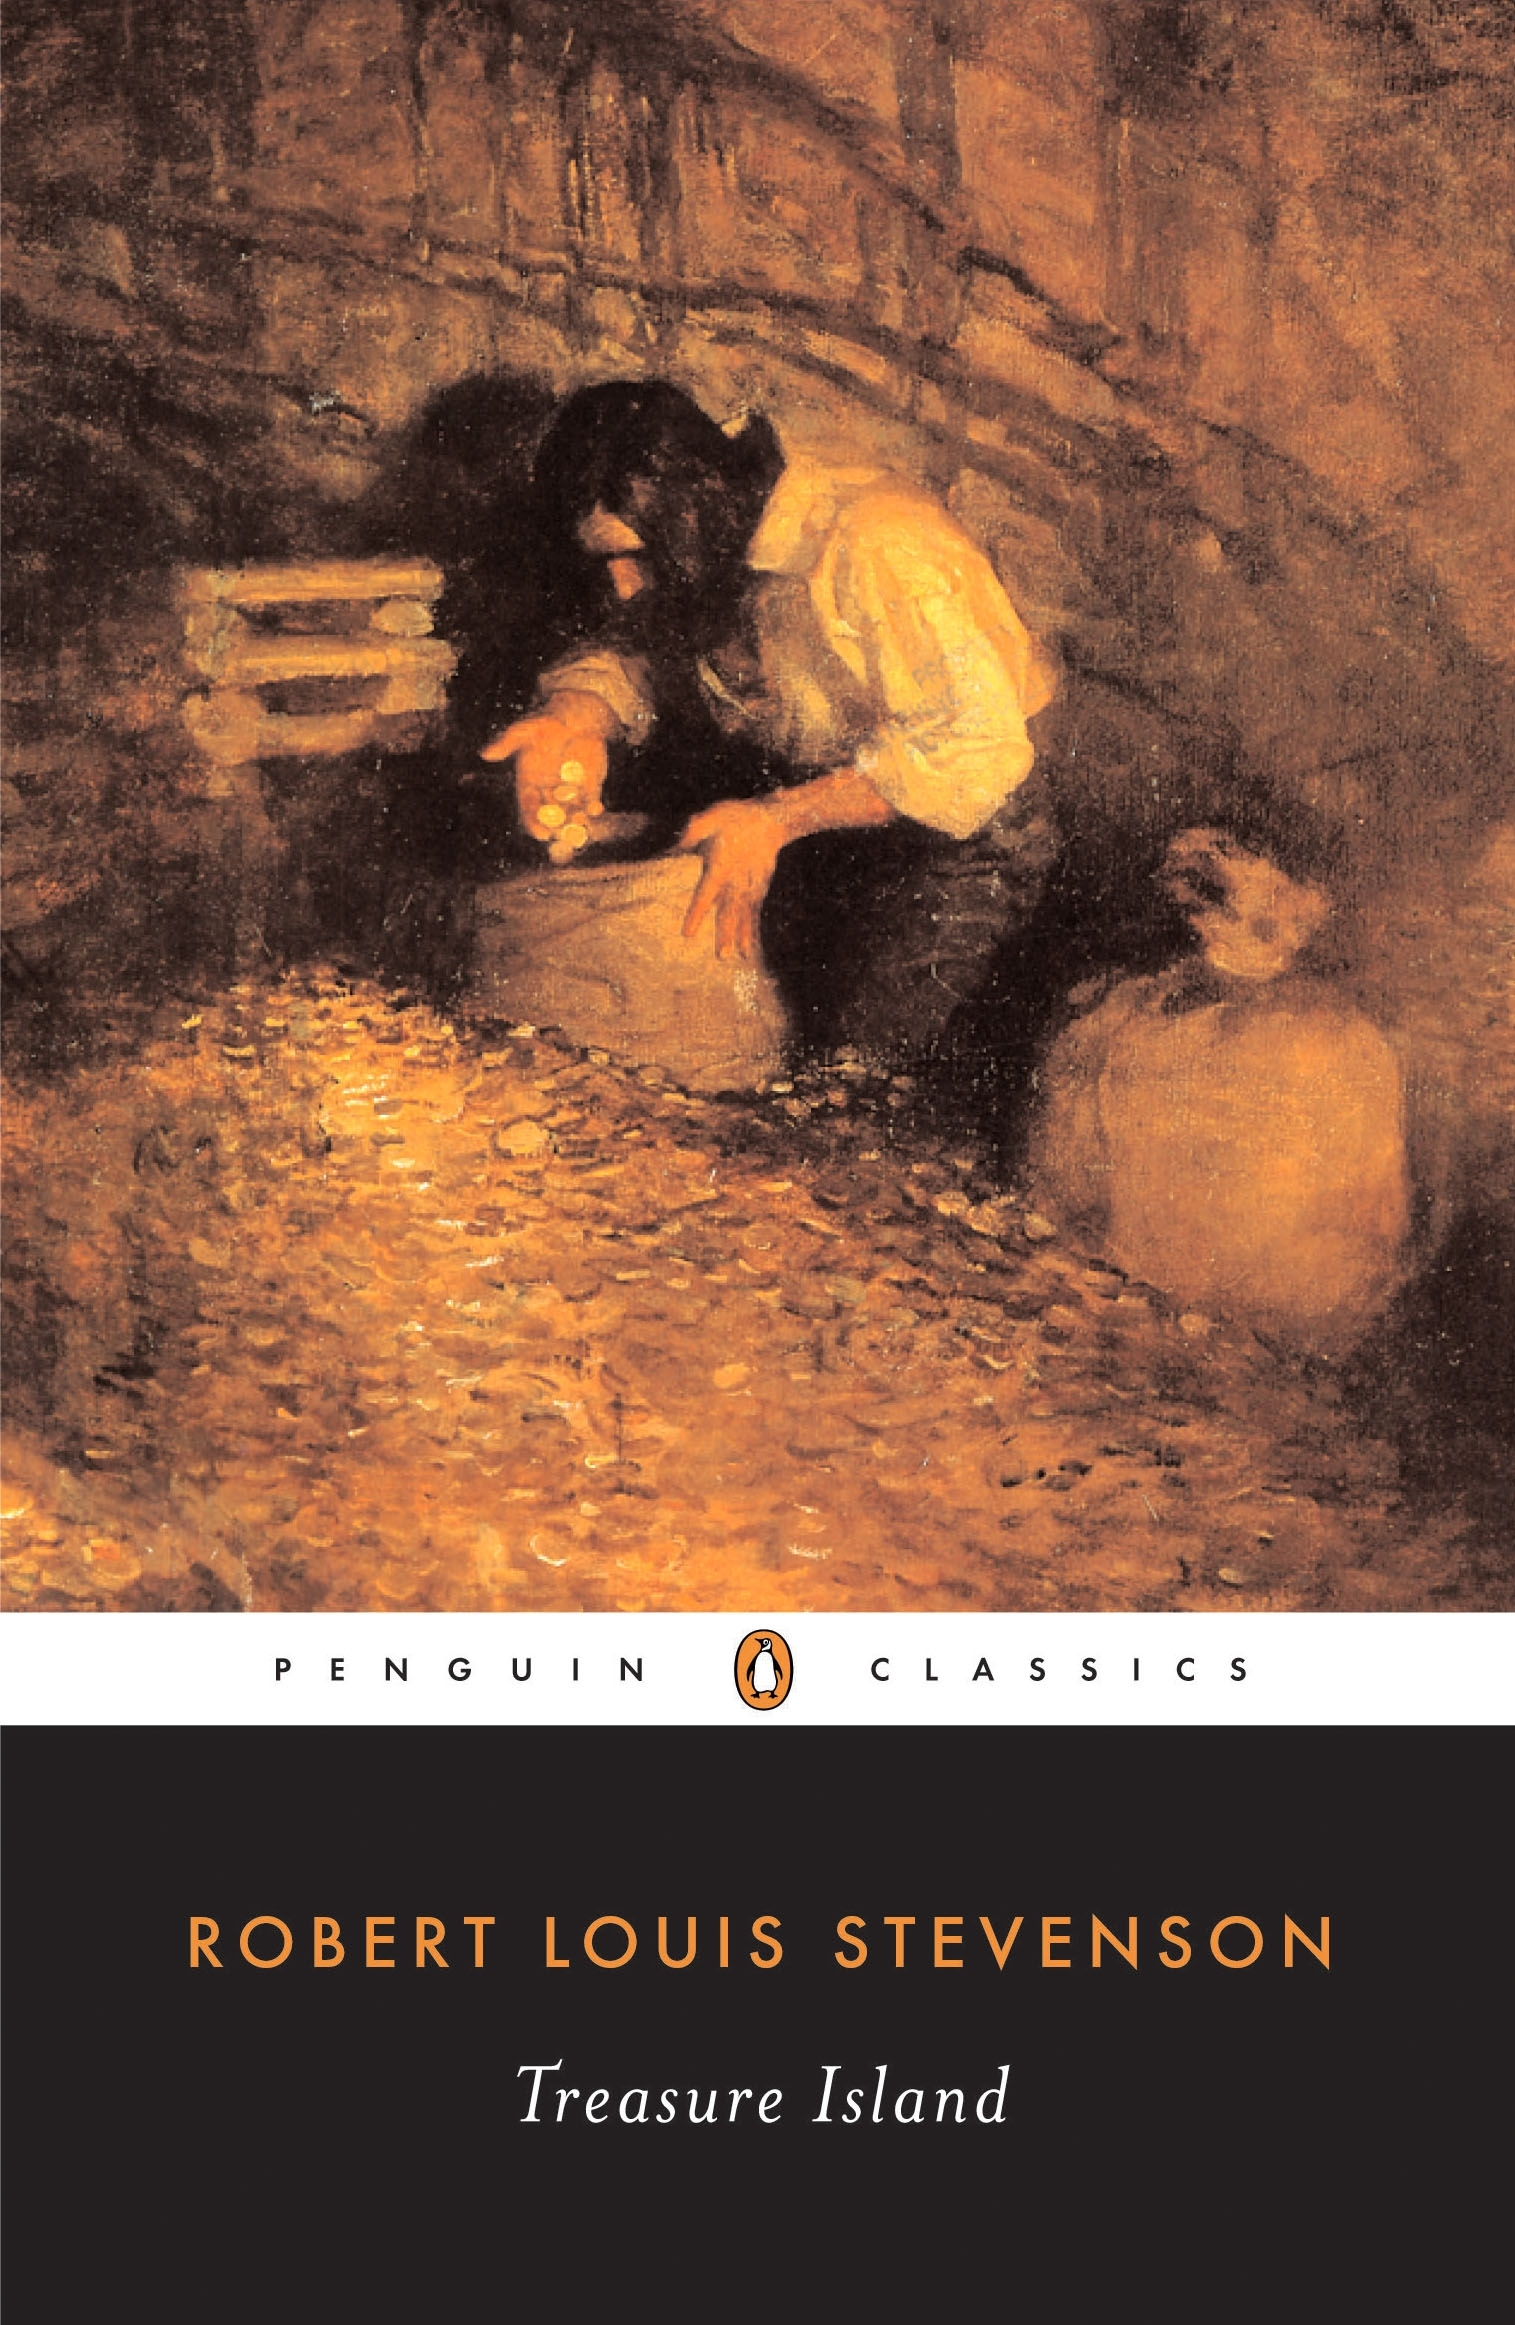 First Publication Of Treasure Island